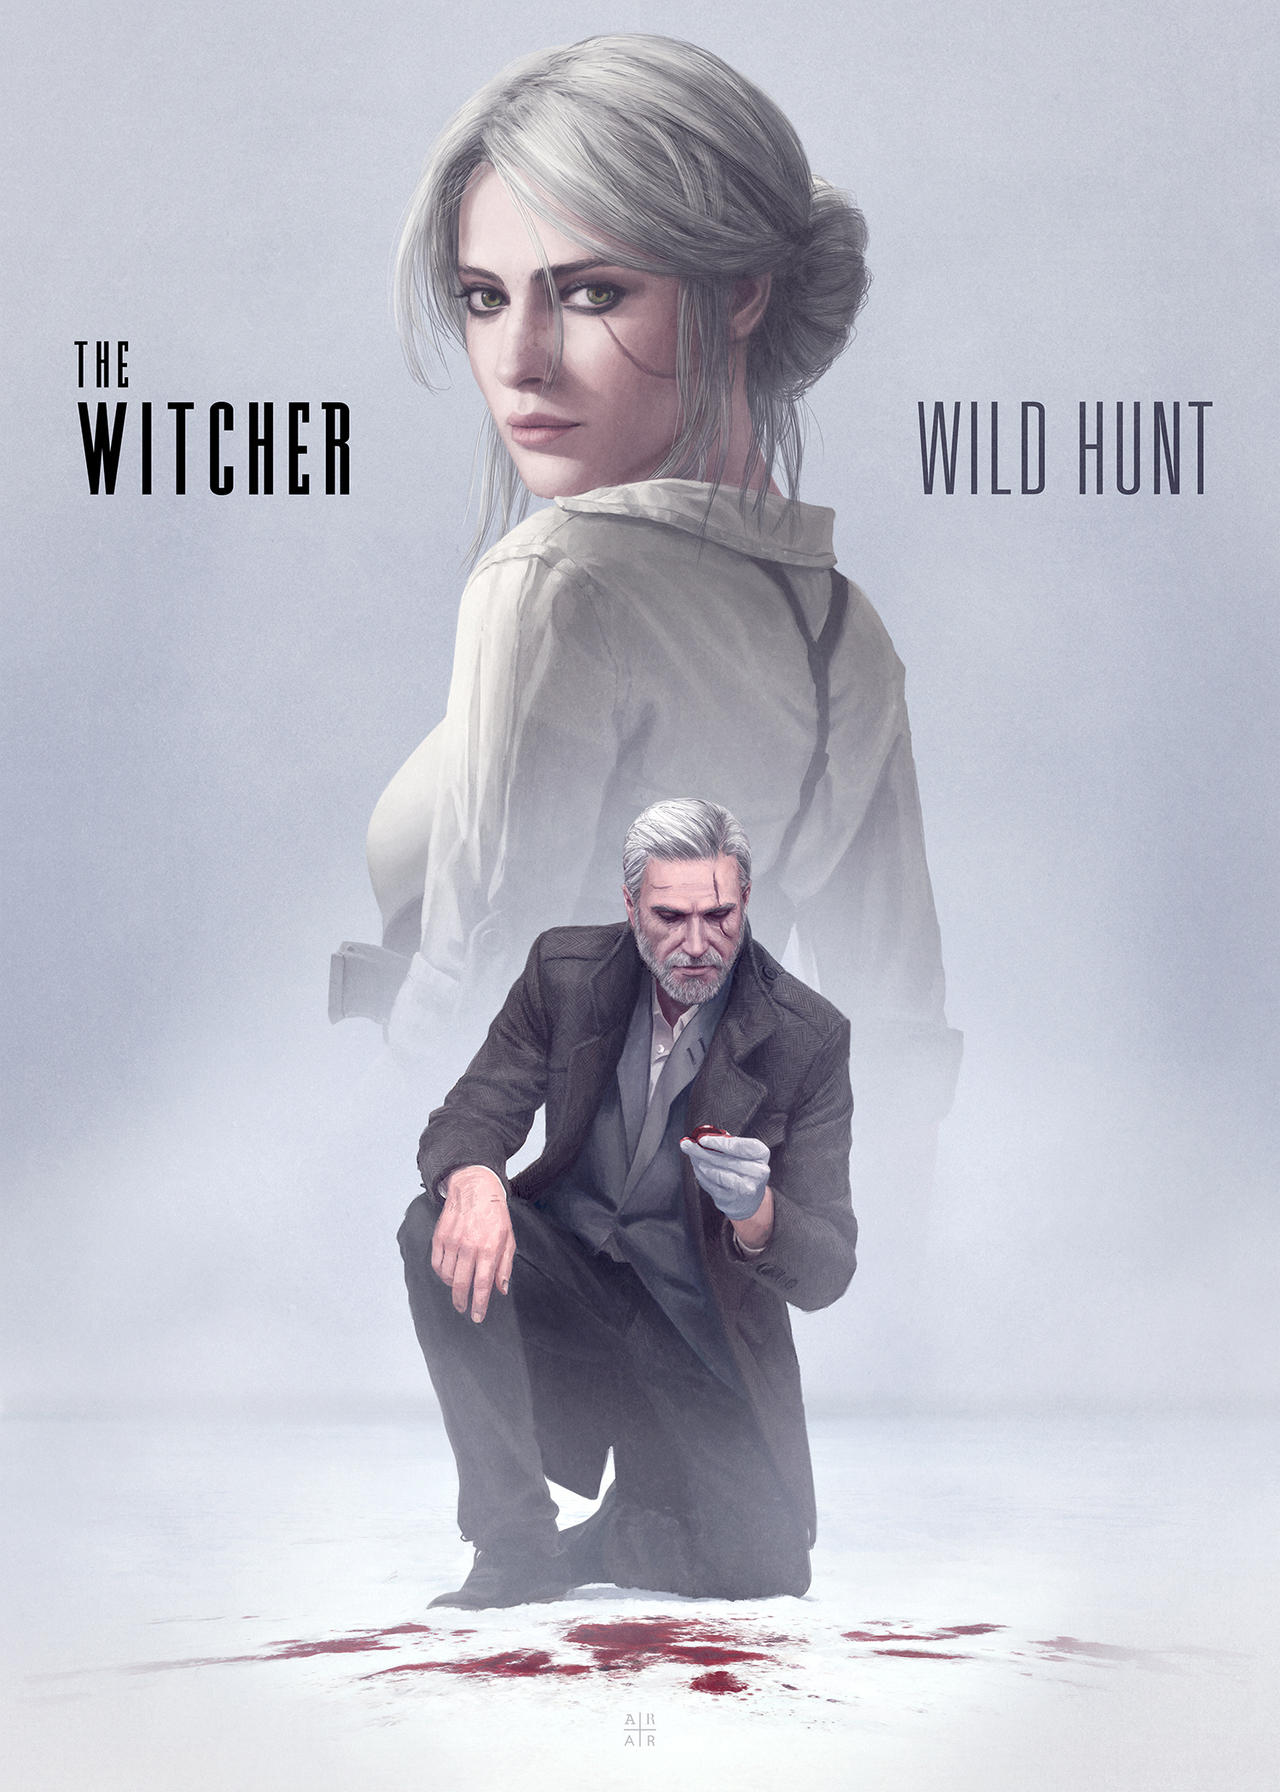 img00.deviantart.net/149d/i/2016/173/0/6/the_witcher___wild_hunt__modern__by_astoralexander-da77kyz.jpg